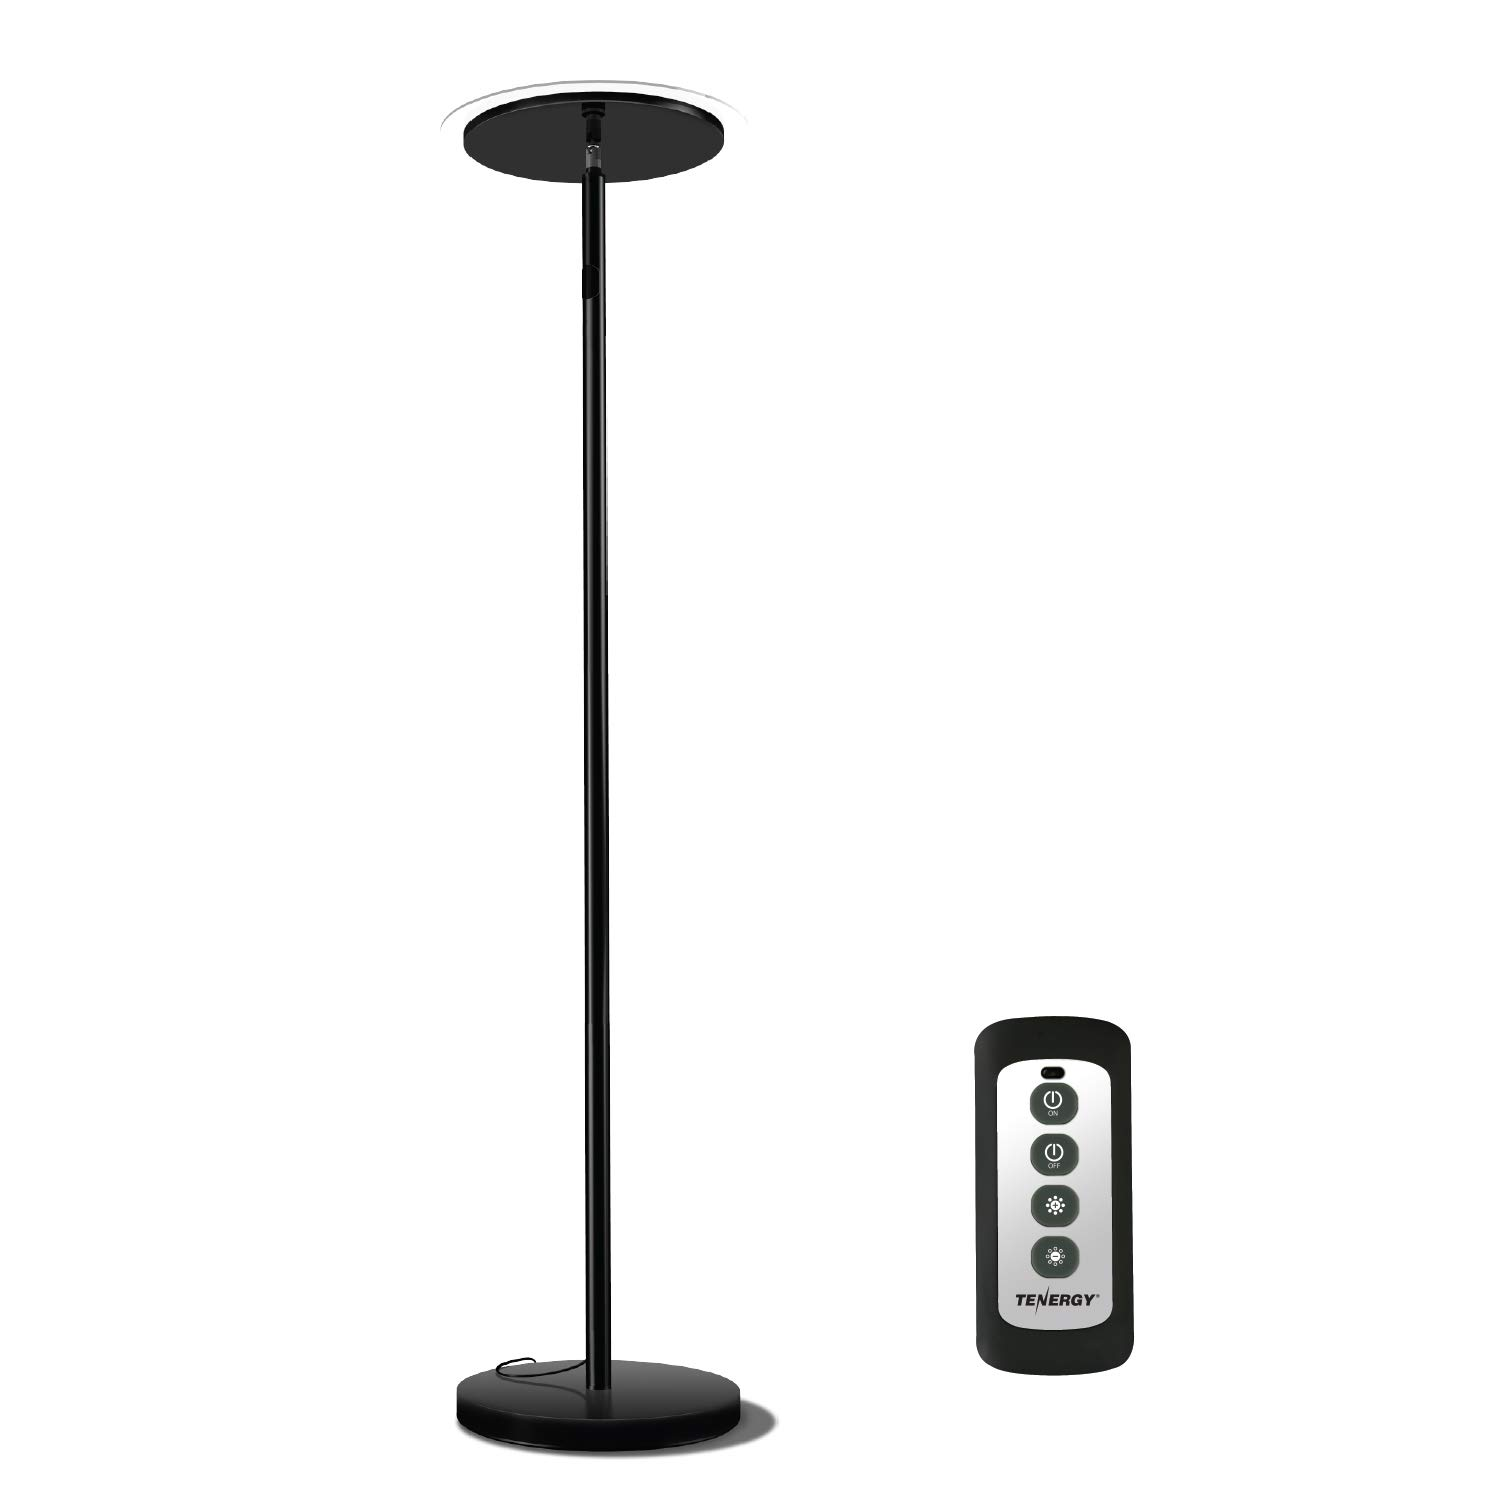 Tenergy Torchiere Dimmable LED Floor Lamp, Remote Controlled 30W (150W Equivalent) Standing Lamp with Stepless Touch Dimmer, Two-Part Trip-Proof Cable, 90° Adjustable Top, Warm White Light by Tenergy